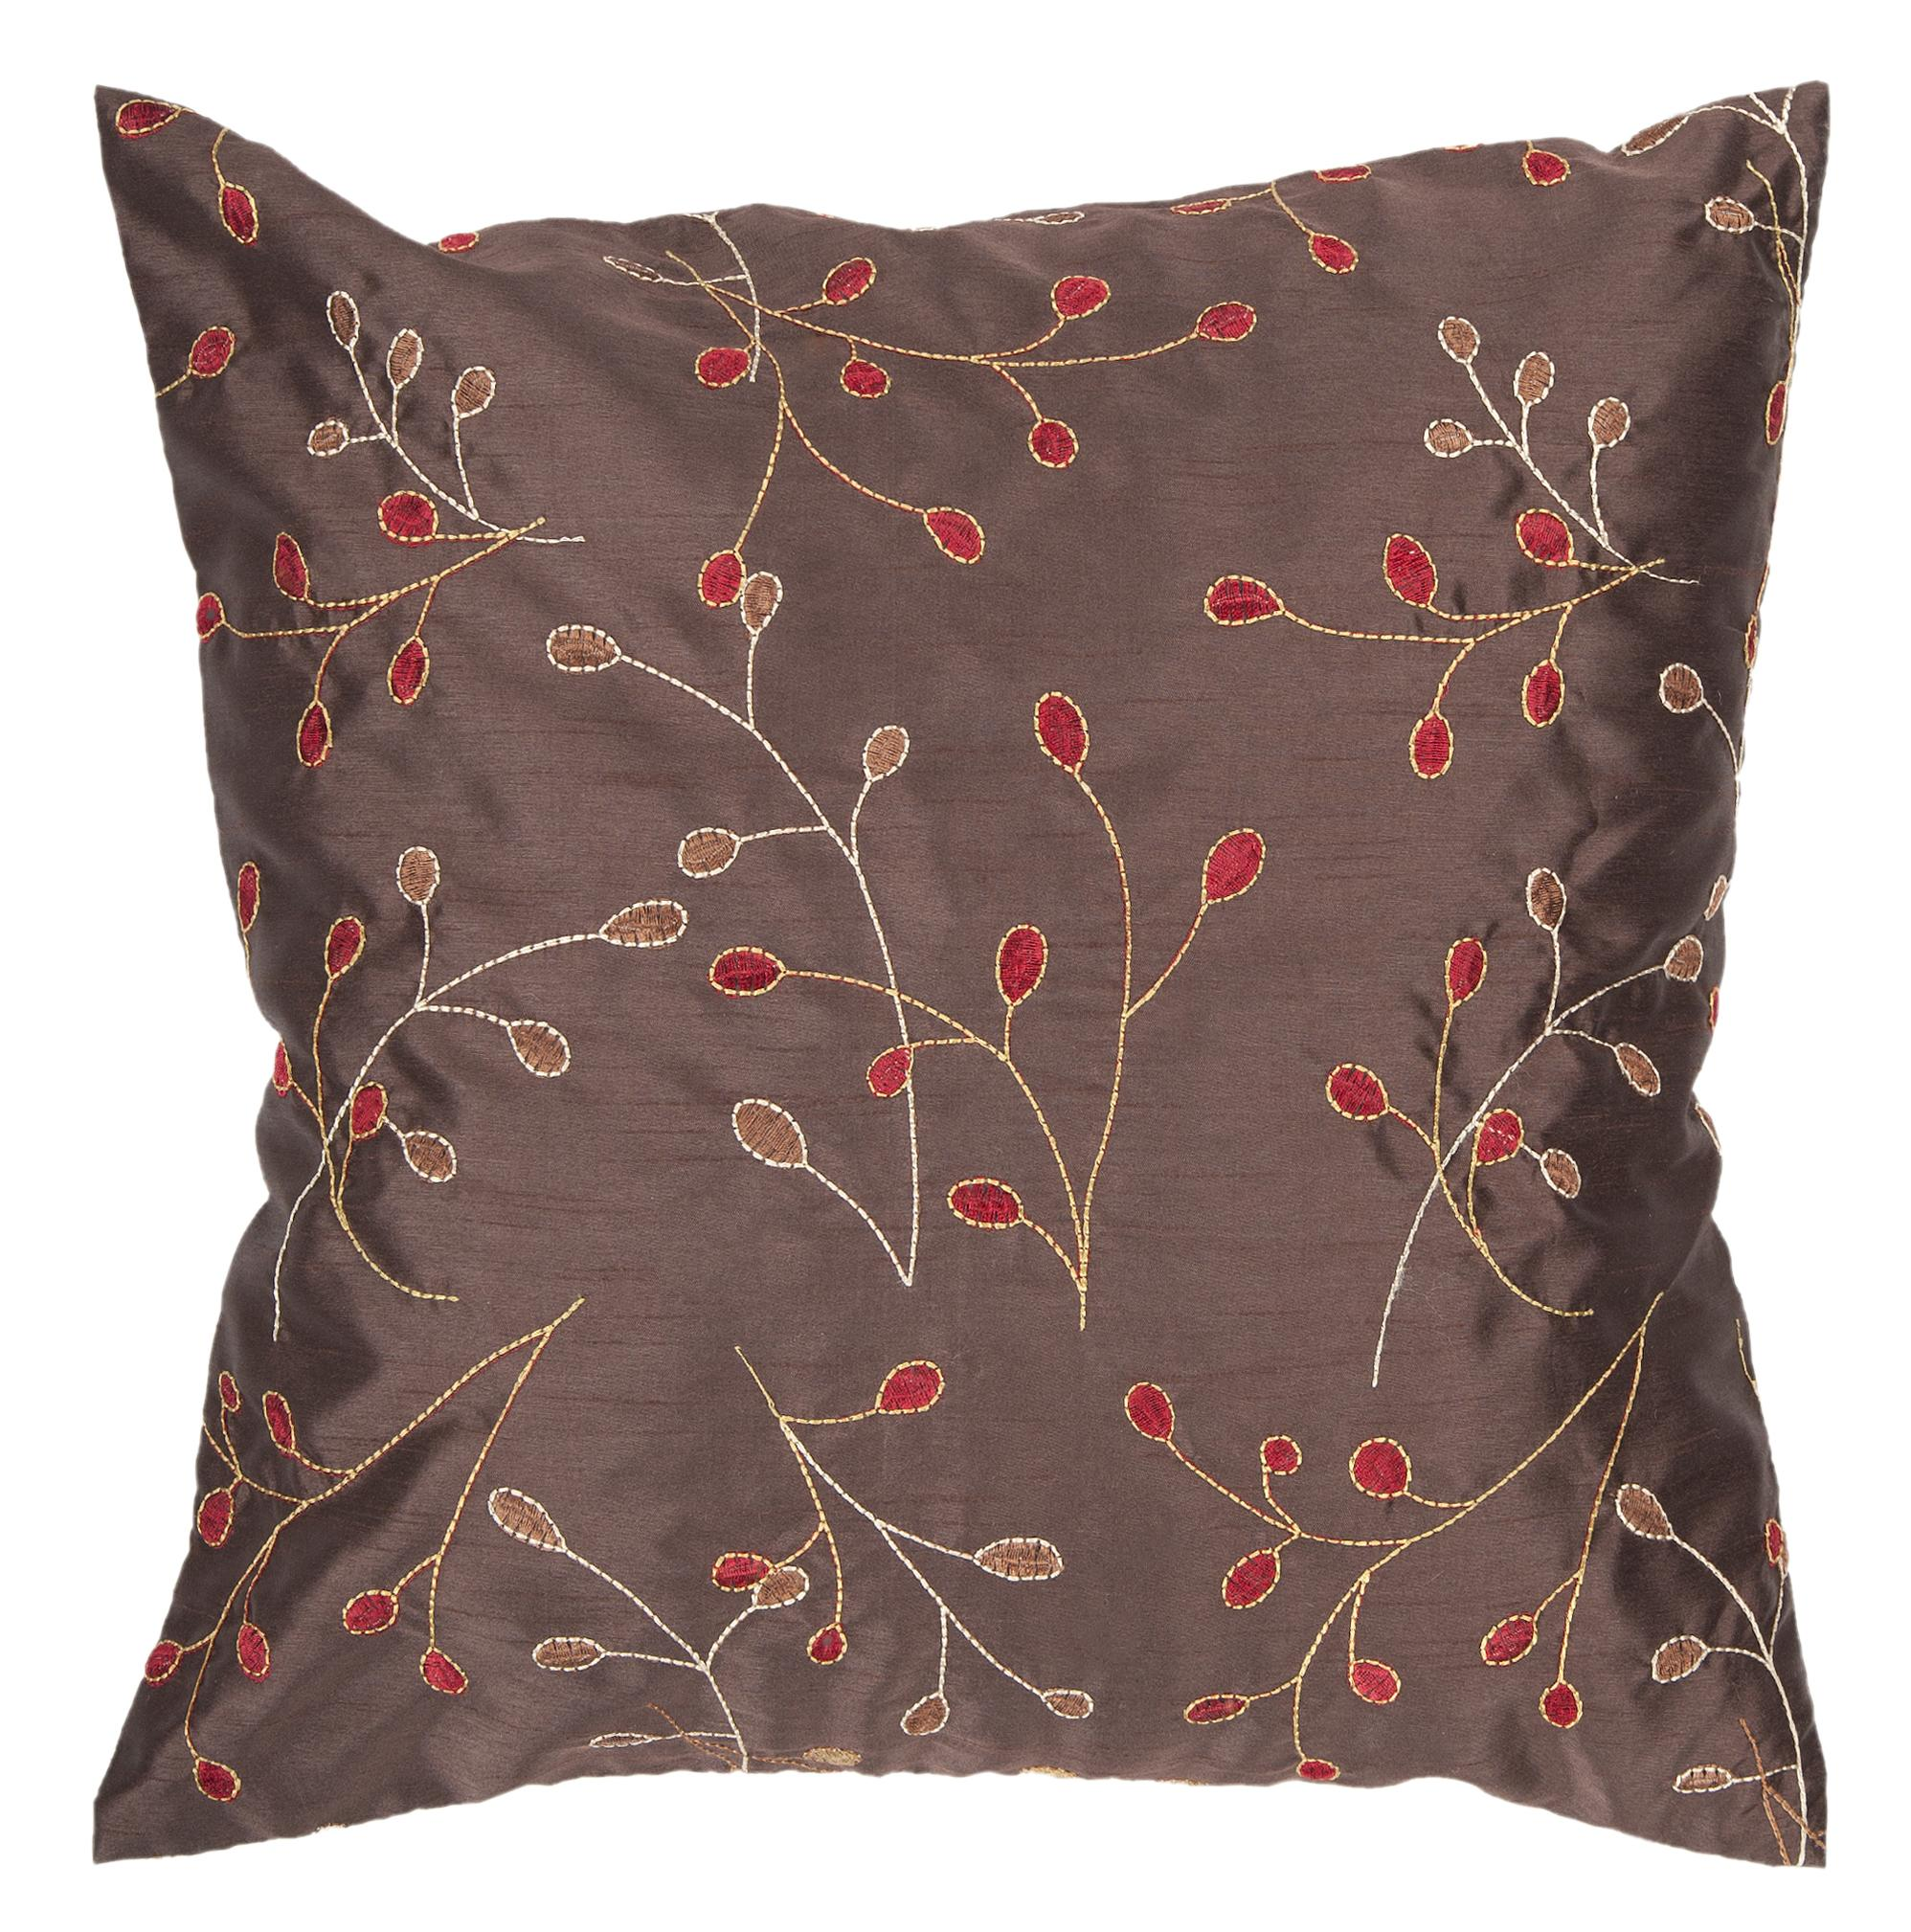 "Surya Pillows 18"" x 18"" Pillow - Item Number: HH094-1818P"